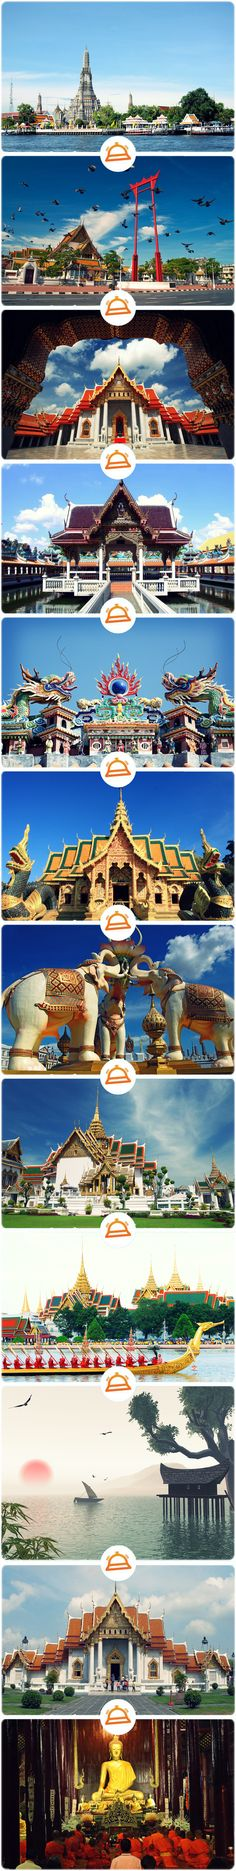 """Bangkok, Thailand!>>> http://www.otel.com/hotels/bangkok.htm?sm=pinterest  *Use the code """"UPYRPW15"""" while making your reservation on otel.com, get 10% #discount"""